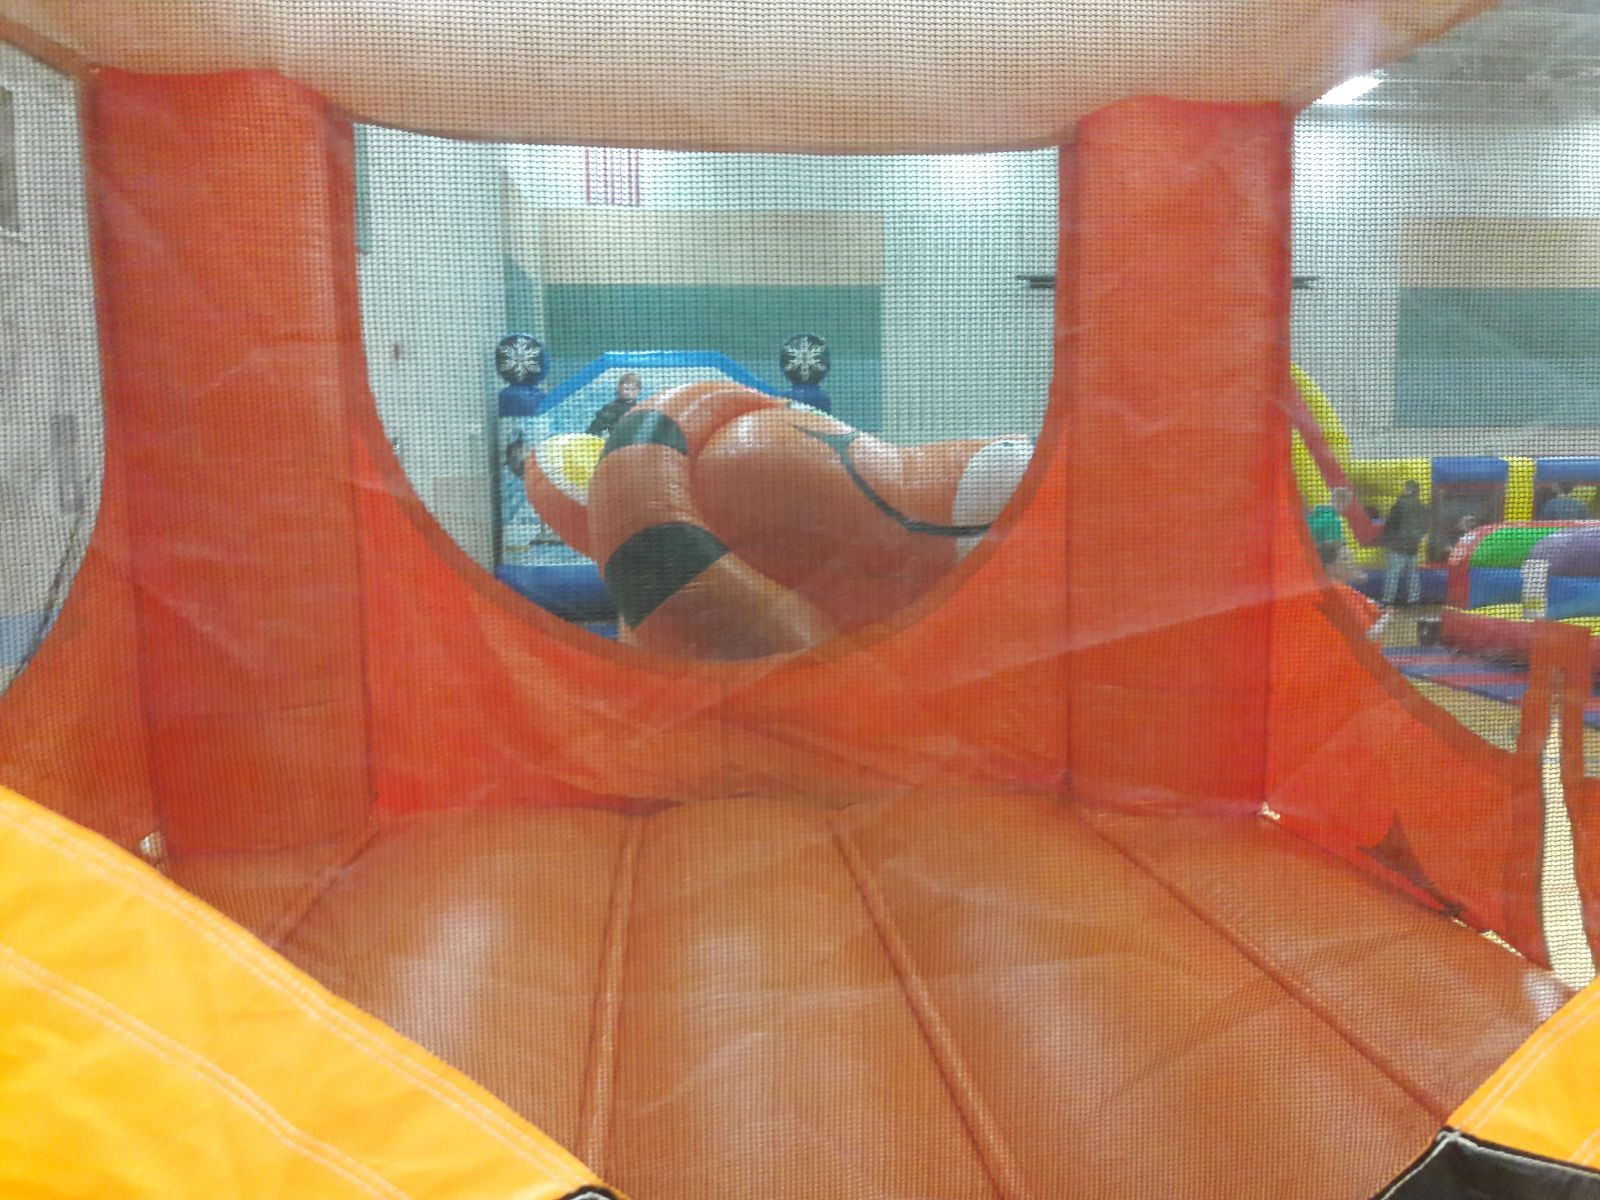 Interior view of the Tiger Belly Bouncer